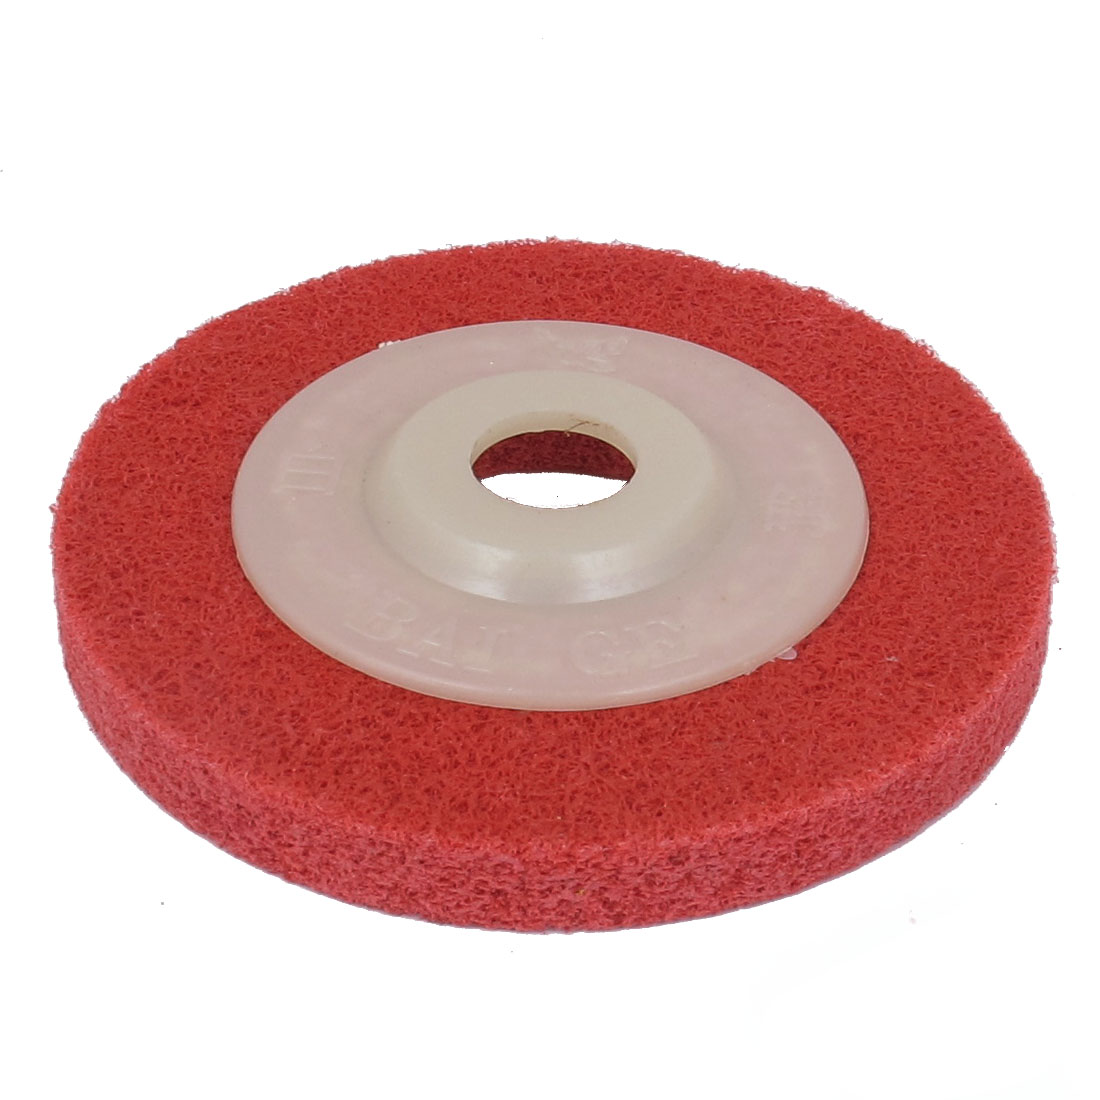 15mm Bore 100mm Dia Nylon Fiber Wheel Abrasive Polishing Buffing Disc Red White